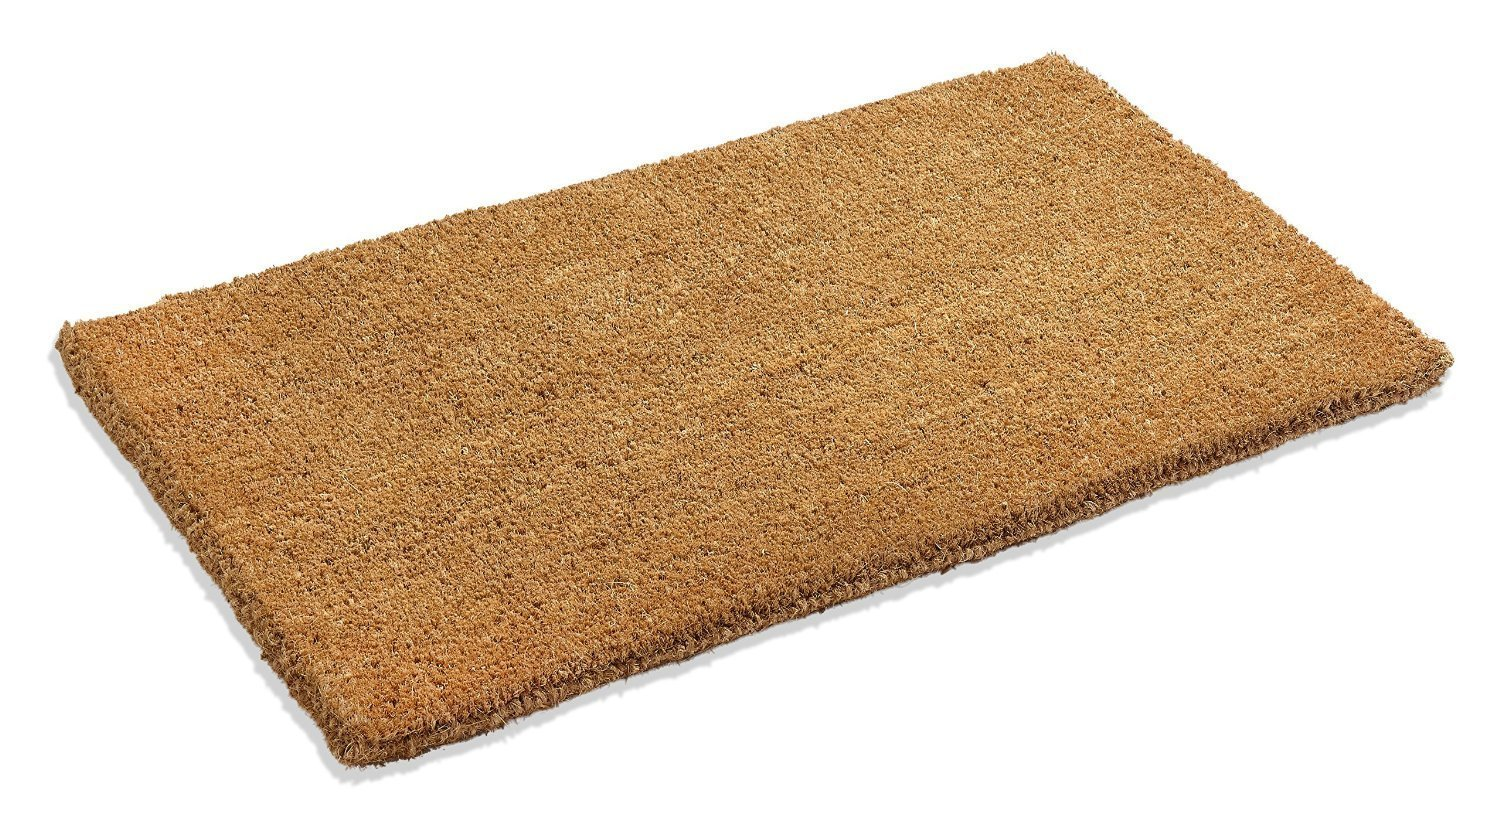 Amazon.com  Kempf Natural Coco Coir Doormat 18 by 30 by 1-Inch  Door Mat  Garden \u0026 Outdoor  sc 1 st  Amazon.com & Amazon.com : Kempf Natural Coco Coir Doormat 18 by 30 by 1-Inch ...